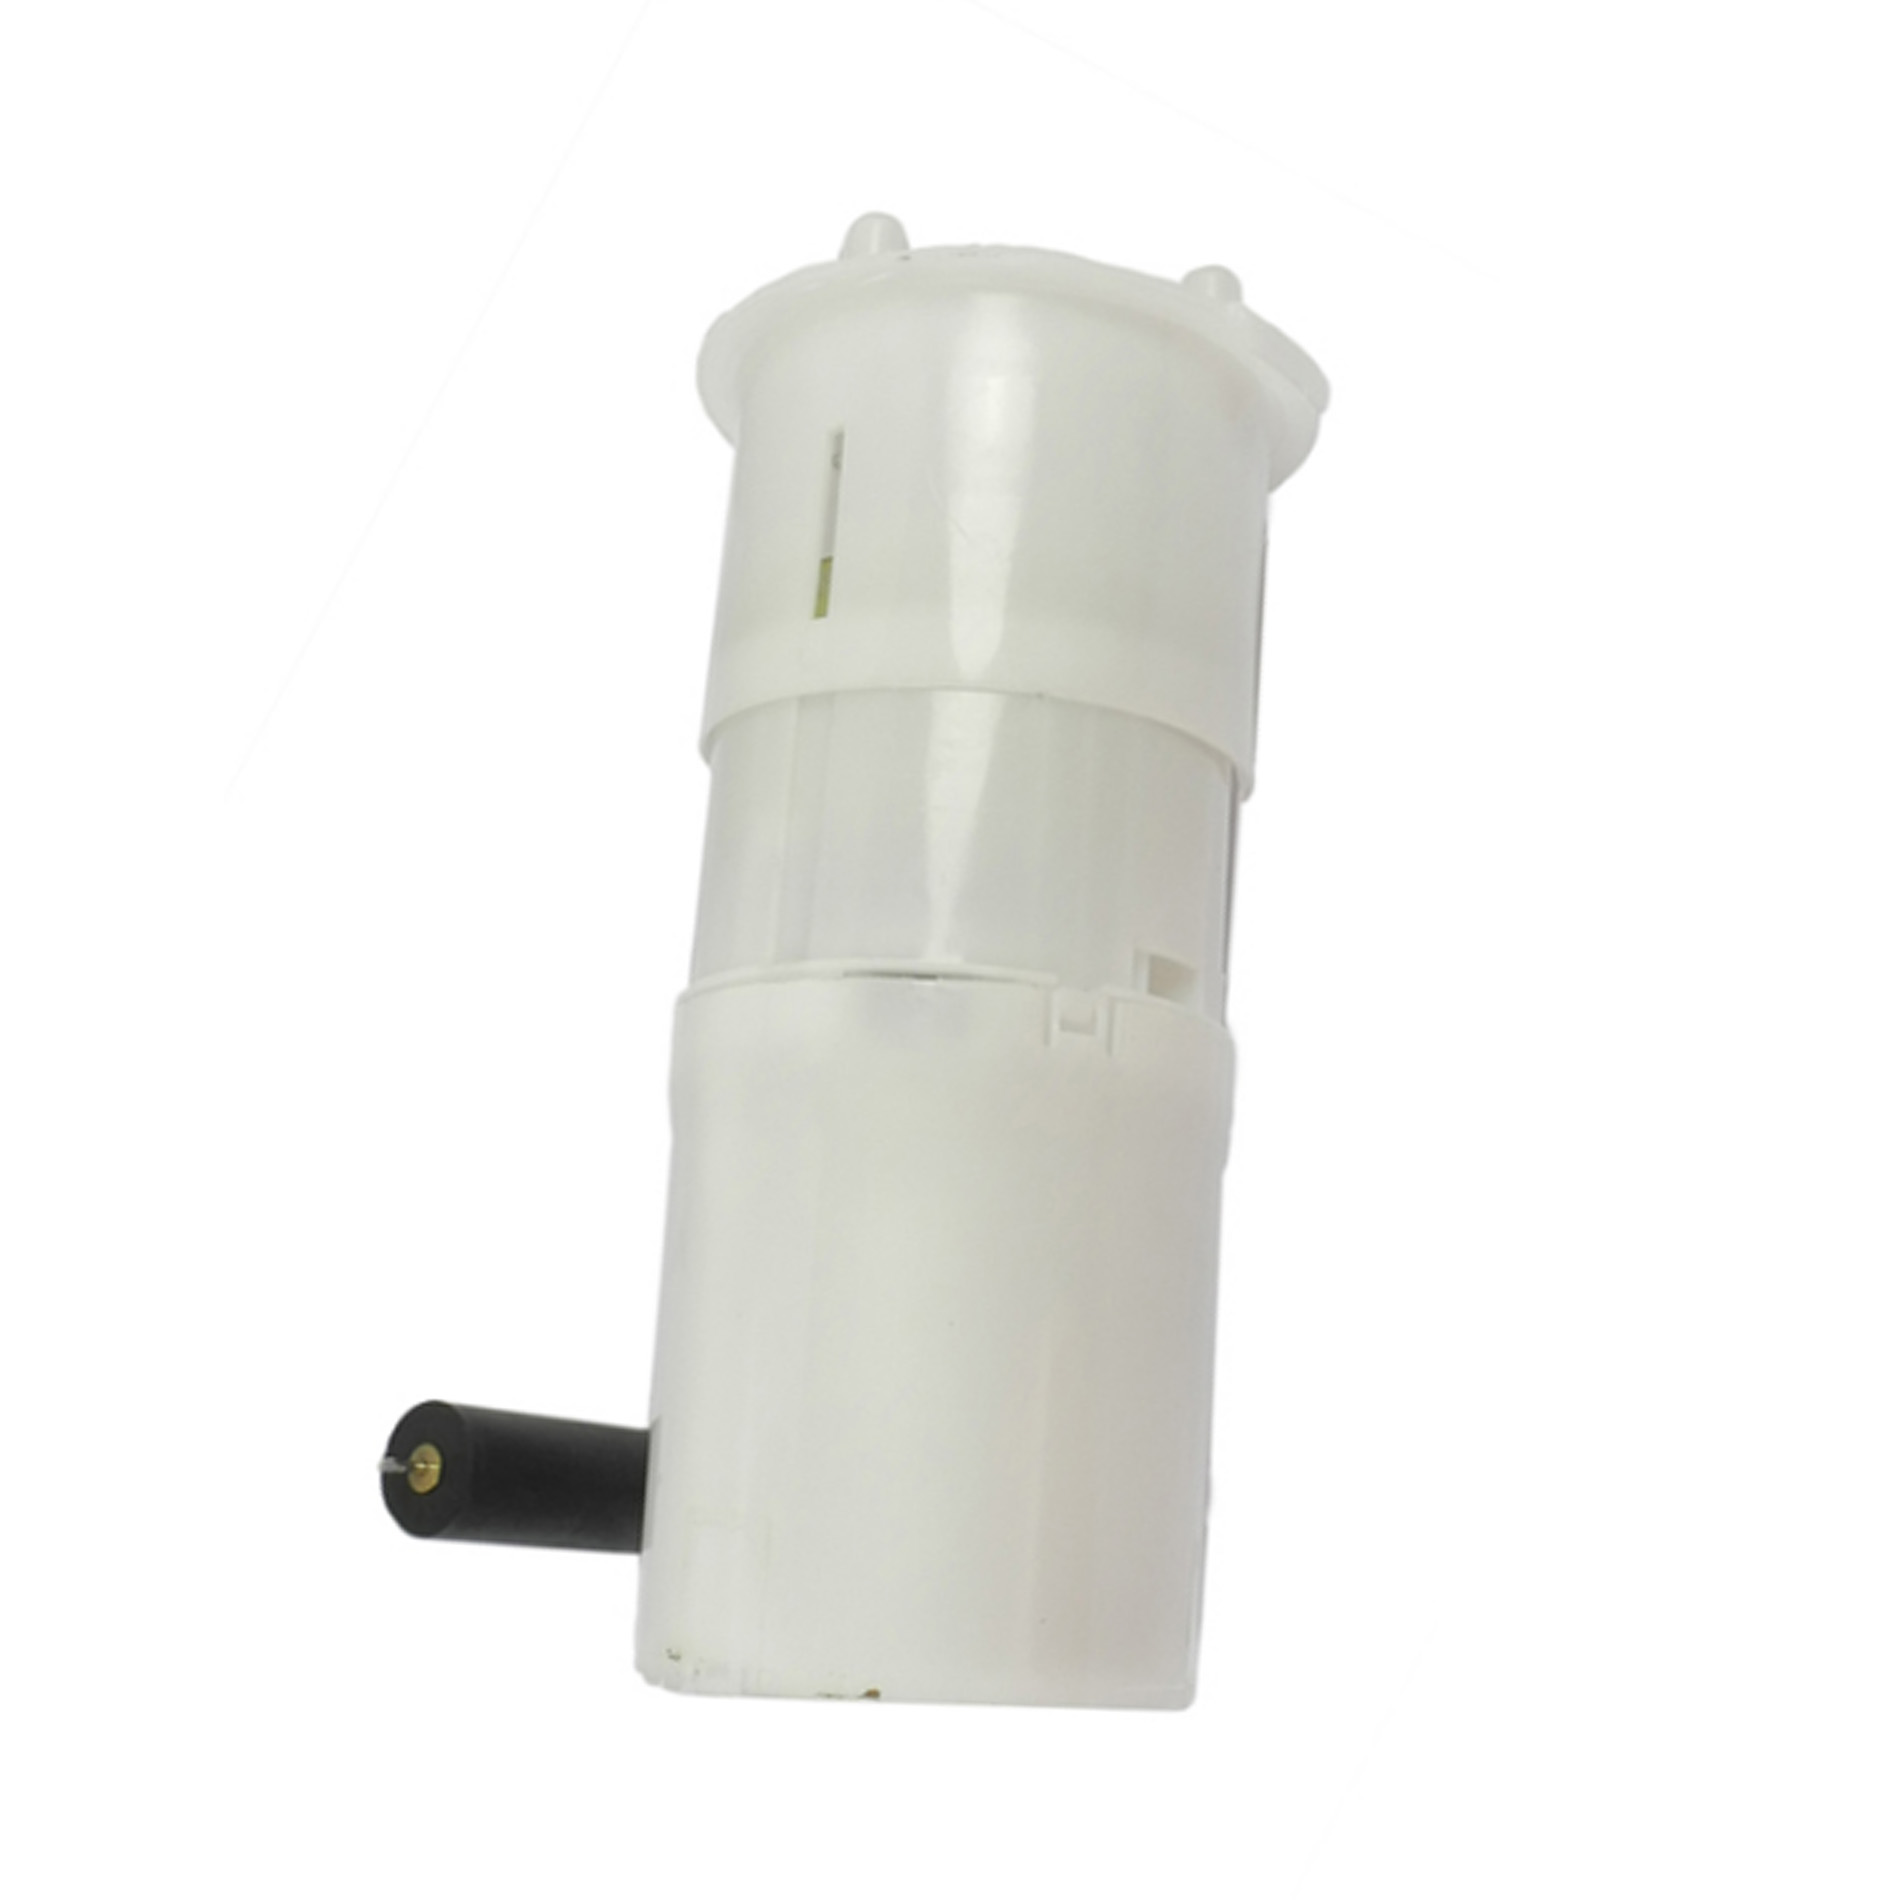 Fuel Pump Assembly For 02 03 04 05 Land Rover Freelander 2.5L WFX000210 New C316